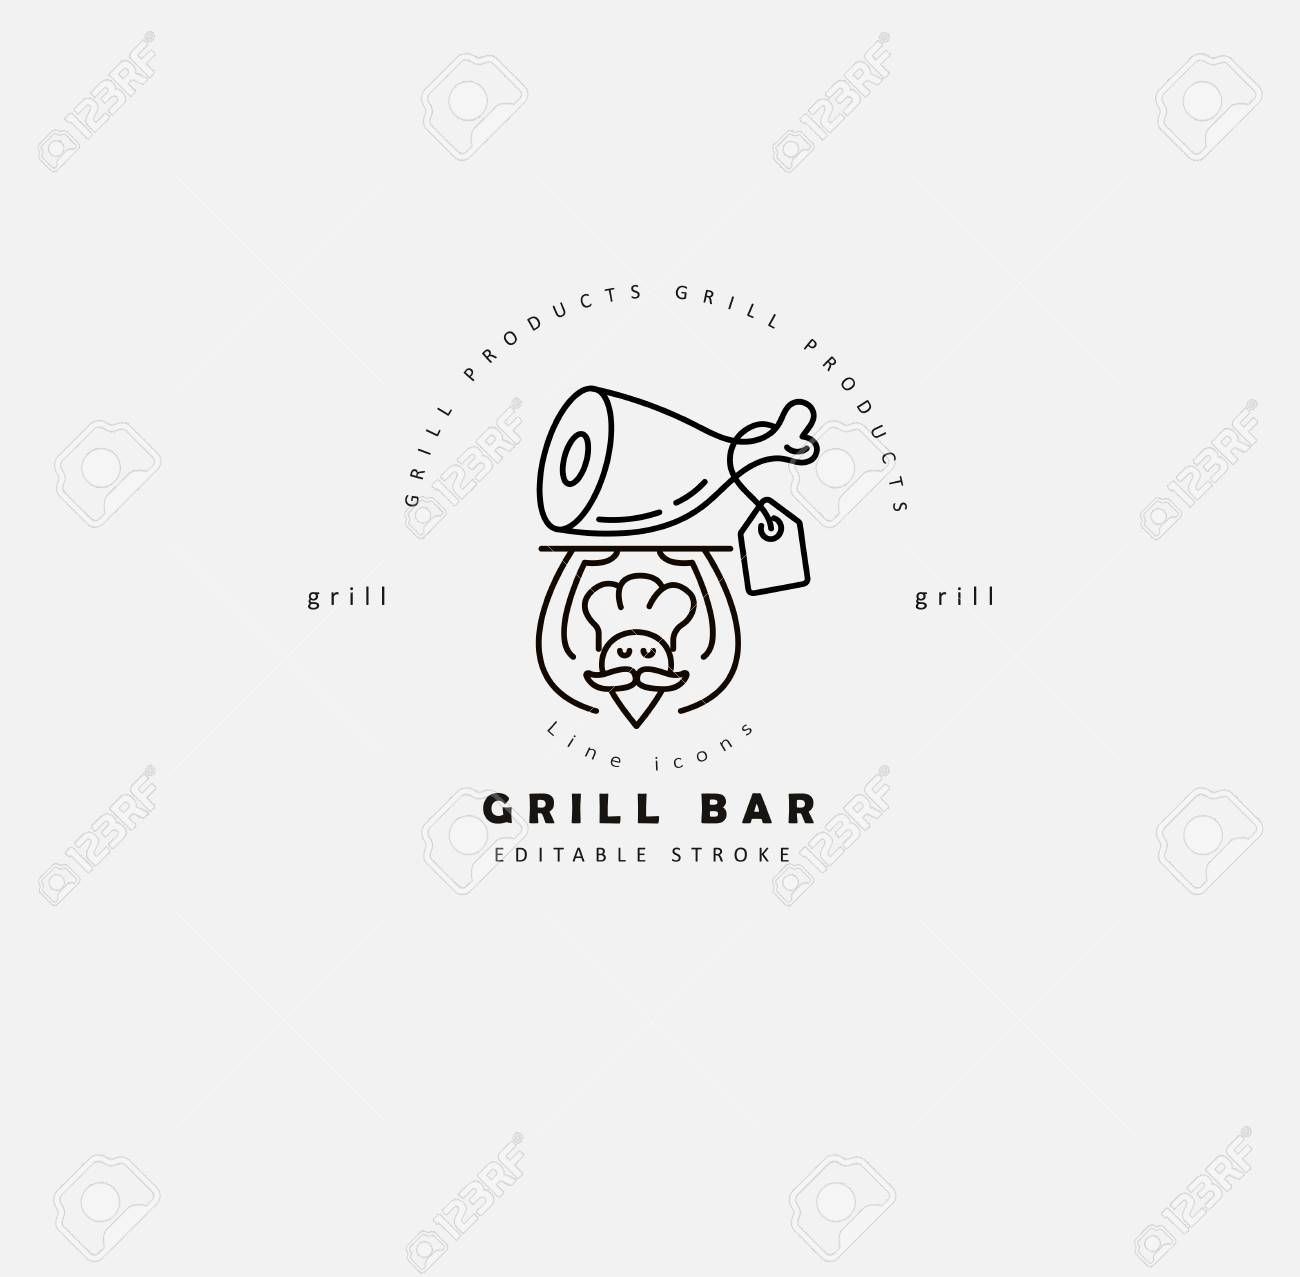 Vector Icon And Logo For Meat And Grill Cafe Or Steak Restaurant Royalty Free Cliparts Vectors And Stock Illustration Image 114841533